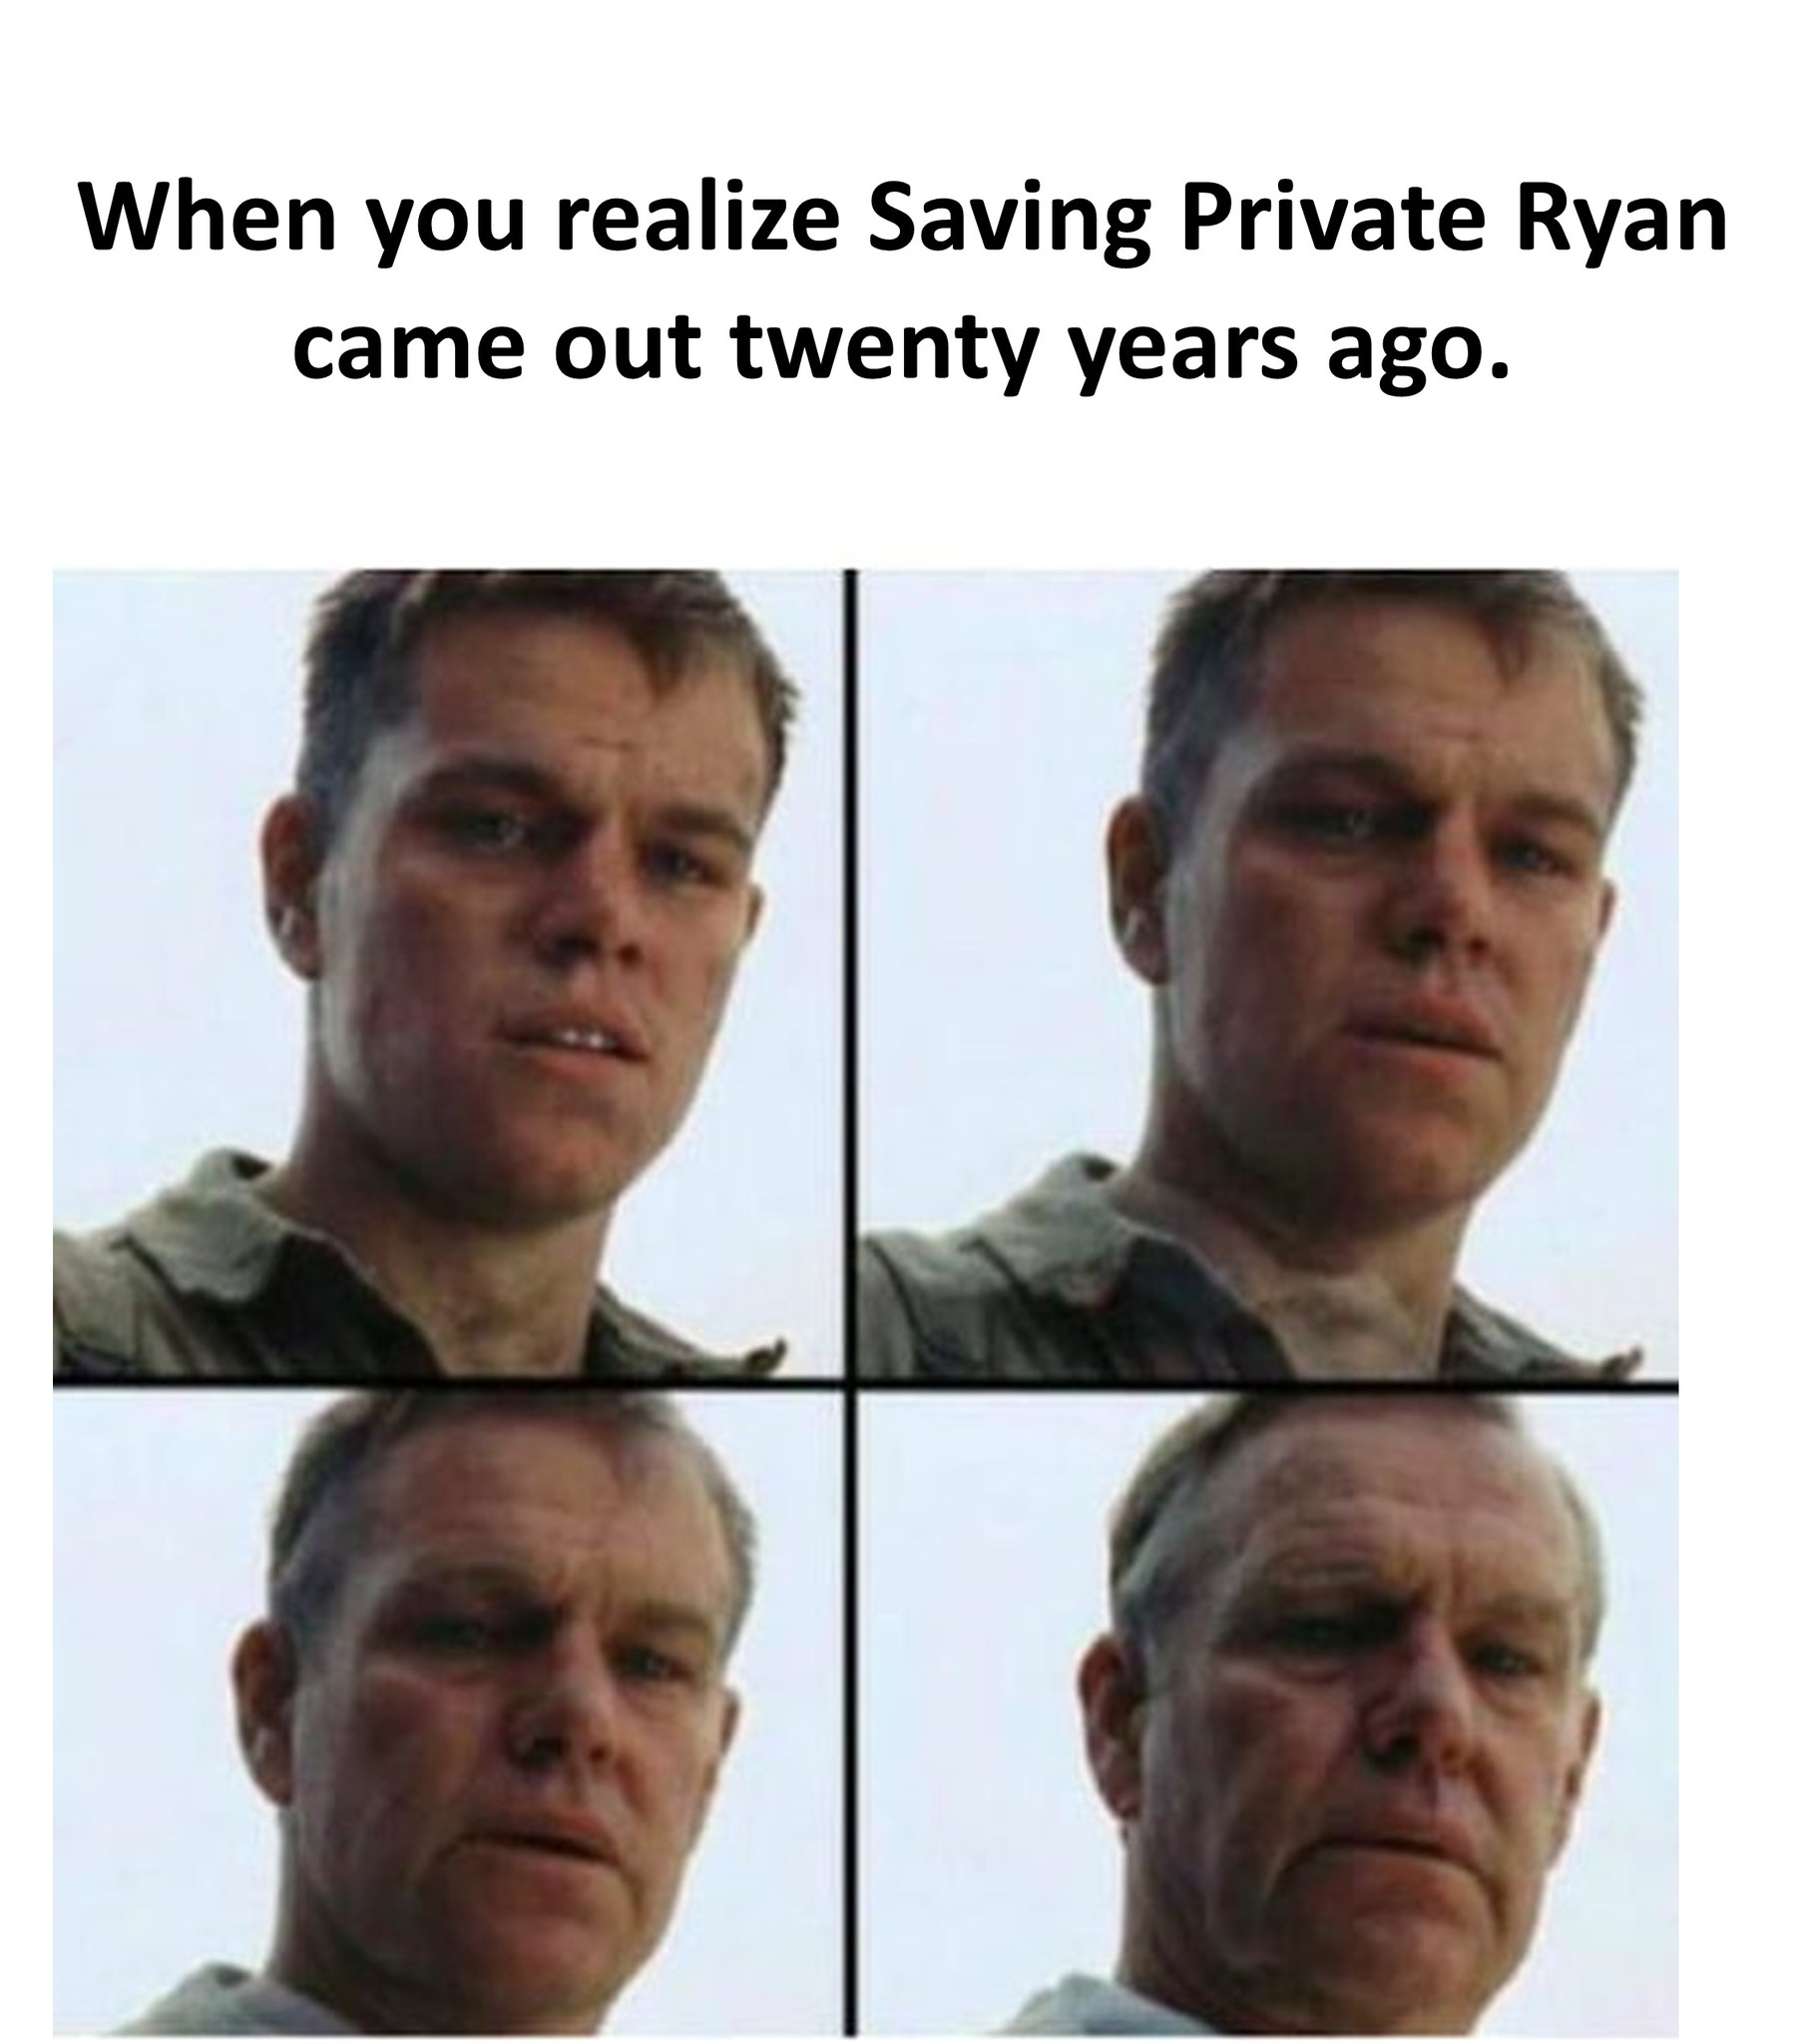 Saving Private Ryan - meme